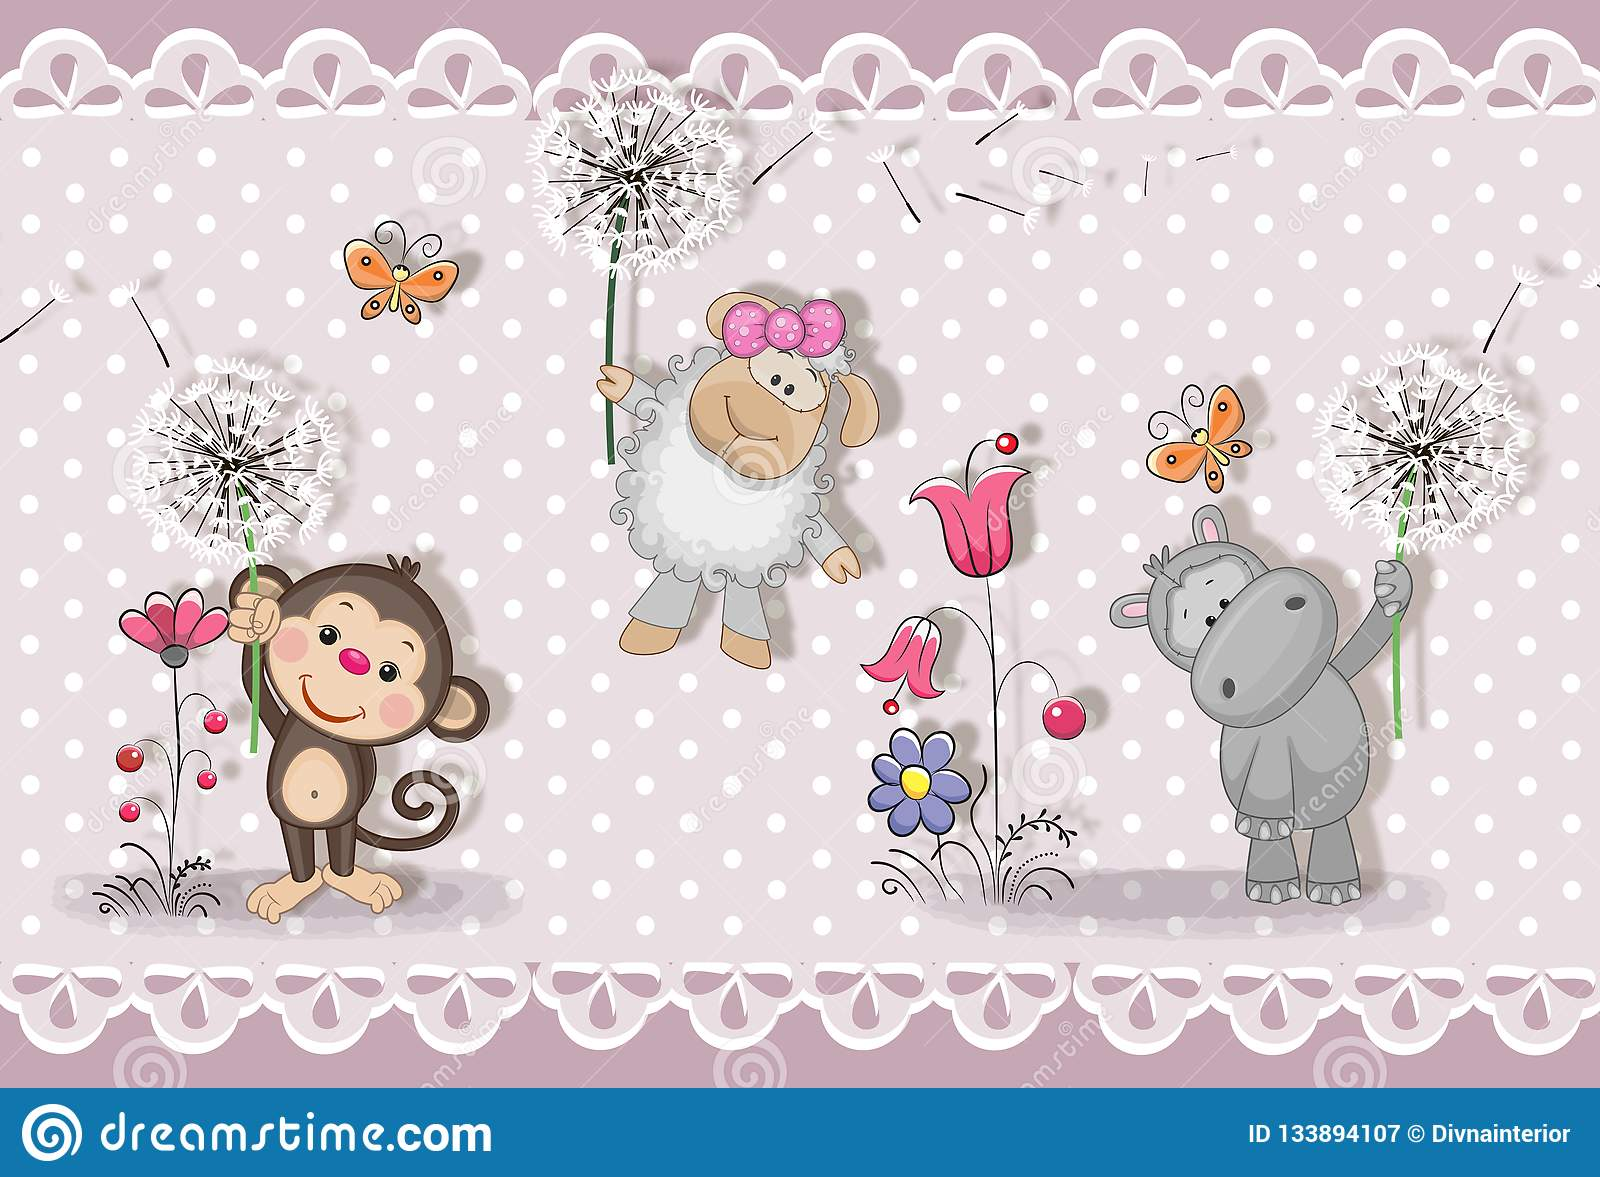 d wallpaper d wallpaper cute baby background little animals greeting card pastel background d wallpaper d wallpaper cute baby 133894107